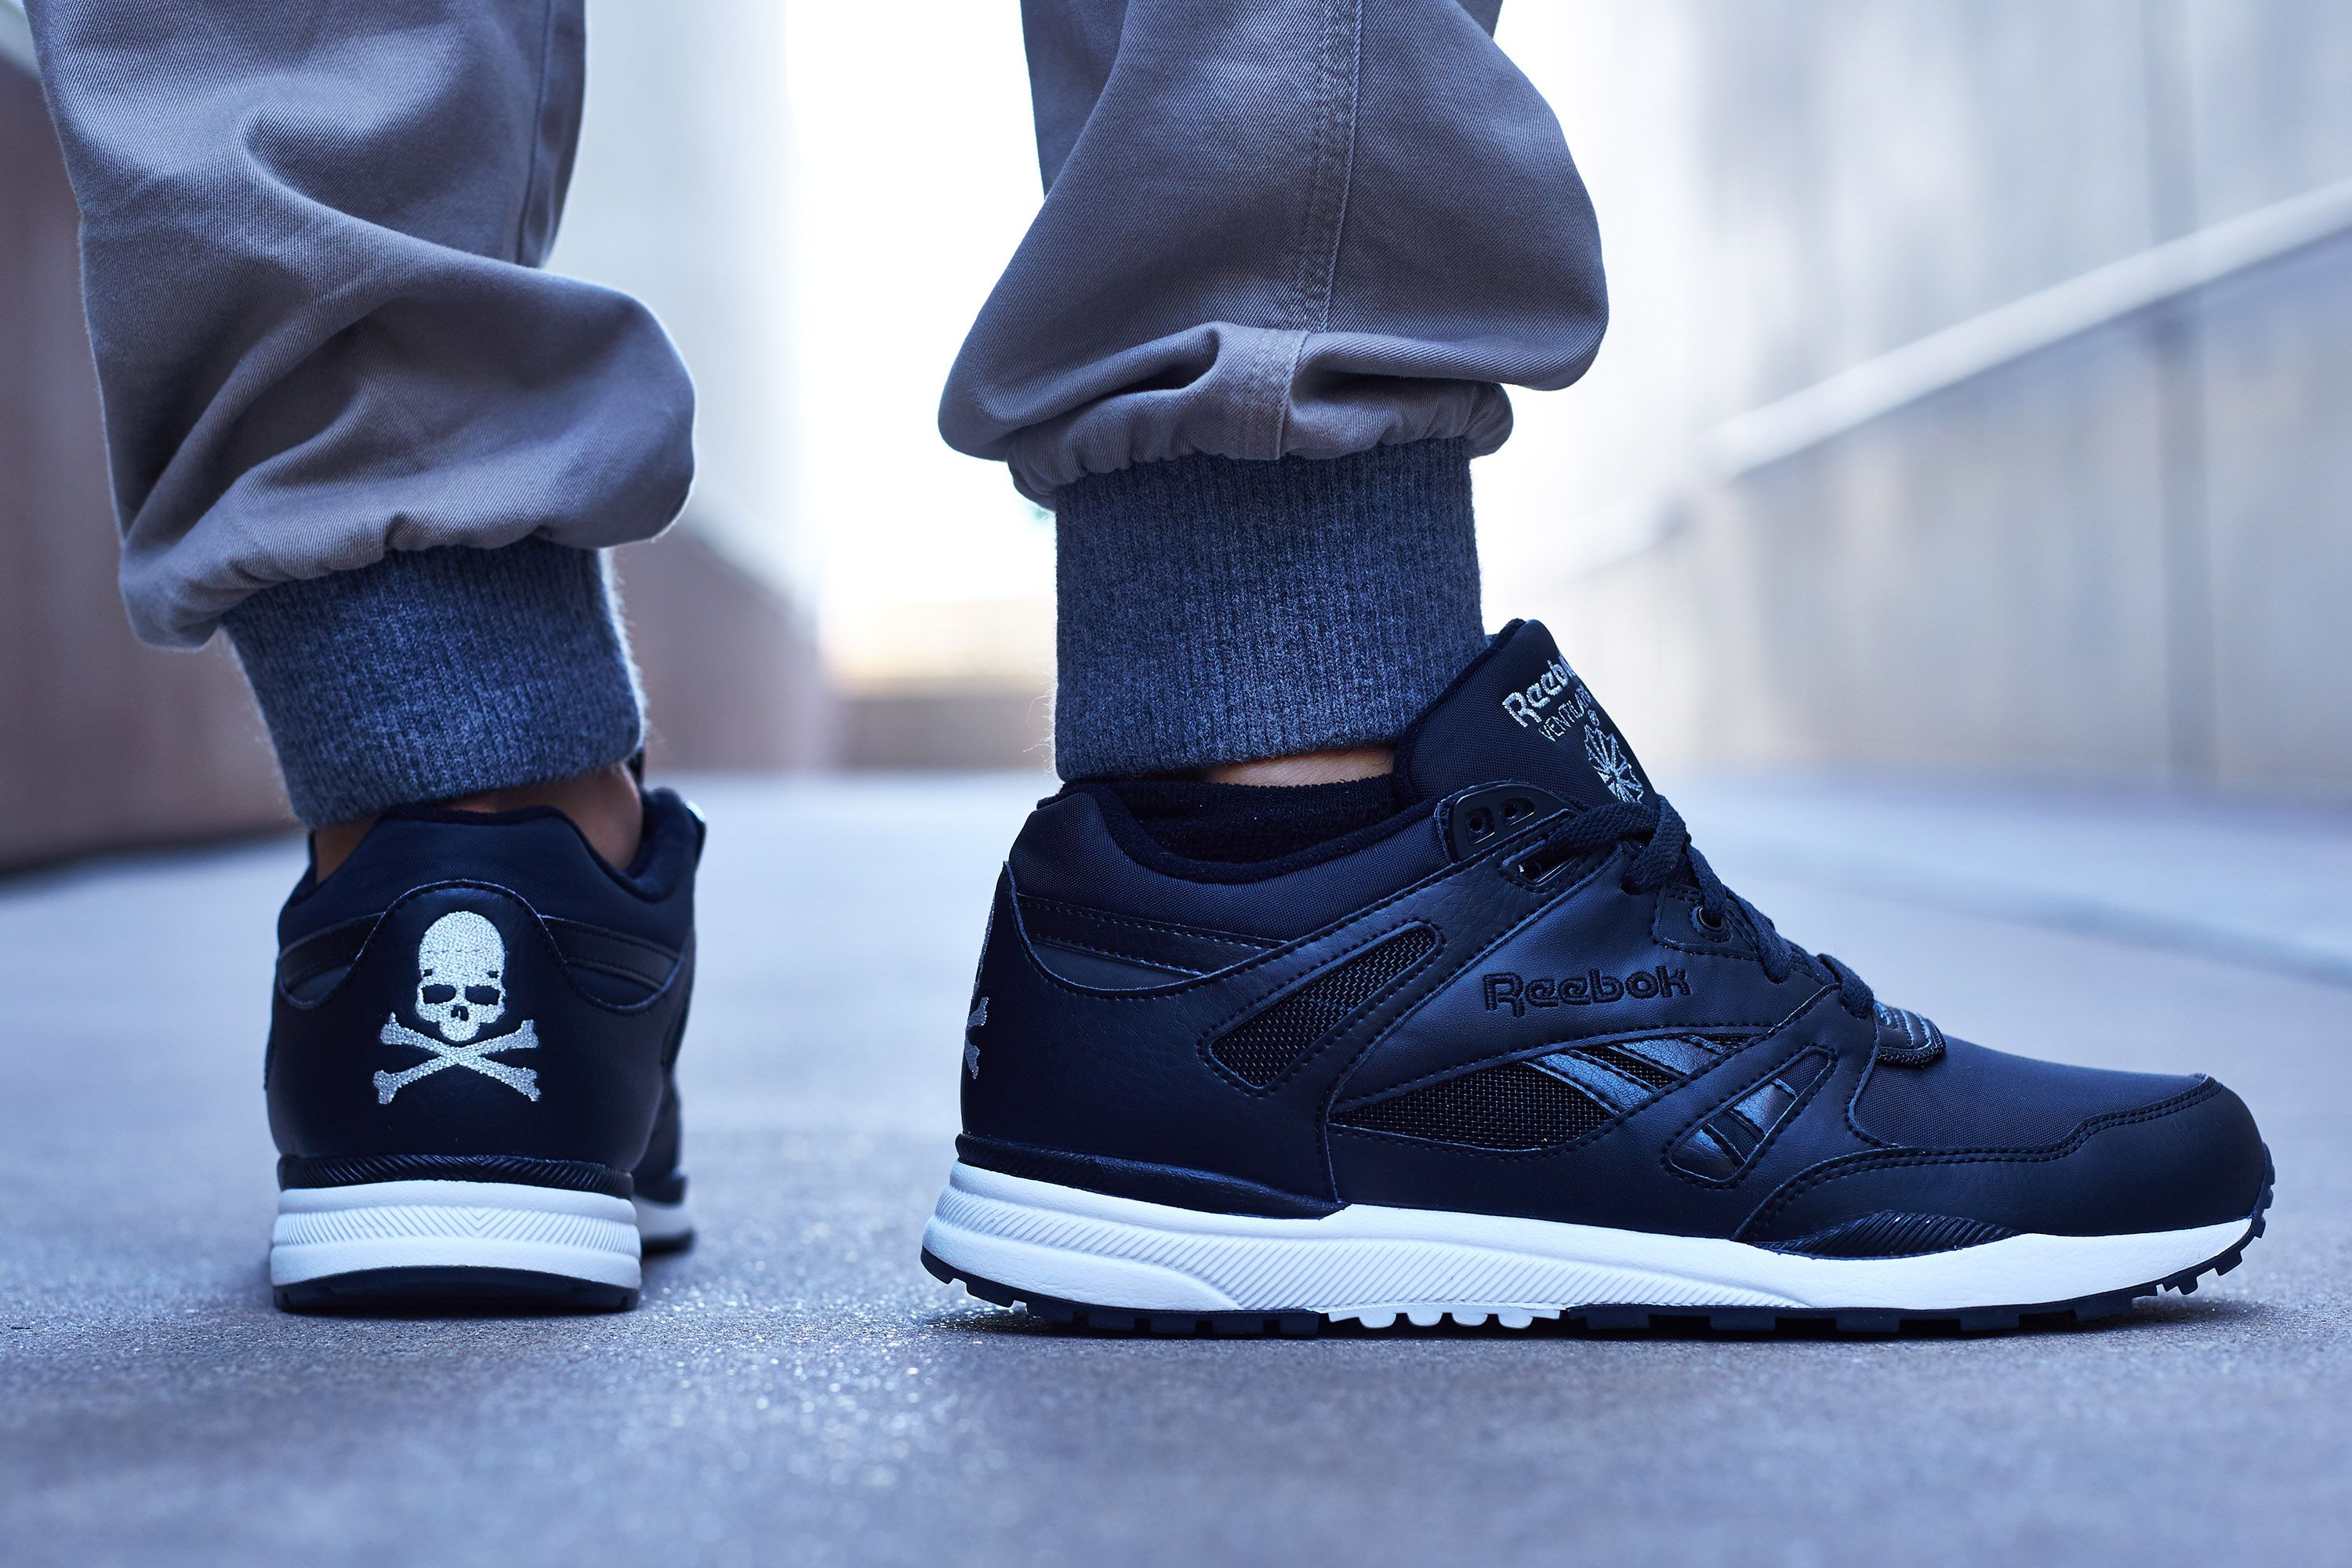 Noir but noticeable, the mastermind JAPAN x Reebok Ventilator continues the  retro running silhouette's collaborative campaign in bold but blunt fashion.